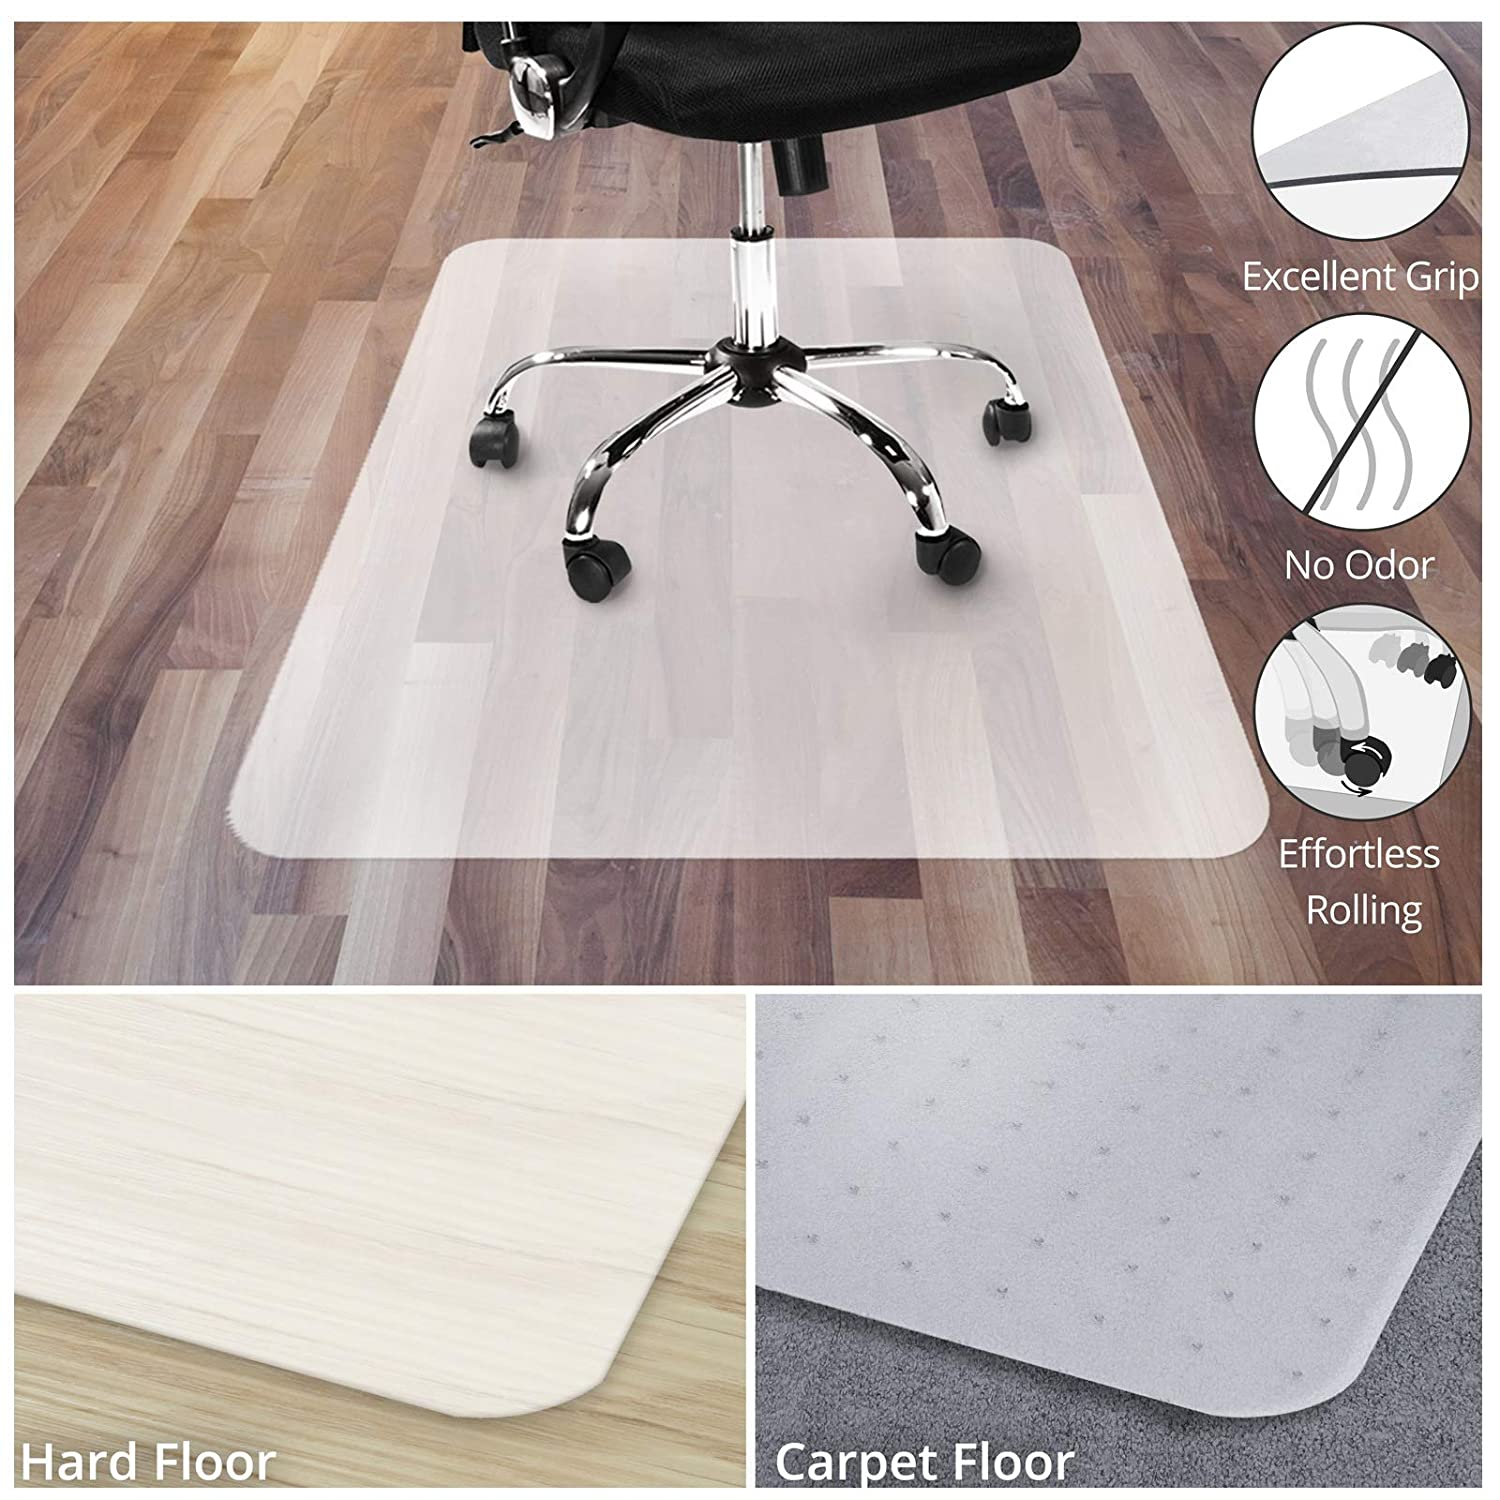 Awesome Office Chair Mat For Hardwood Floor Opaque Office Floor Mat Bpa Phthalate And Odor Free Multiple Sizes Available 30 X 48 Machost Co Dining Chair Design Ideas Machostcouk